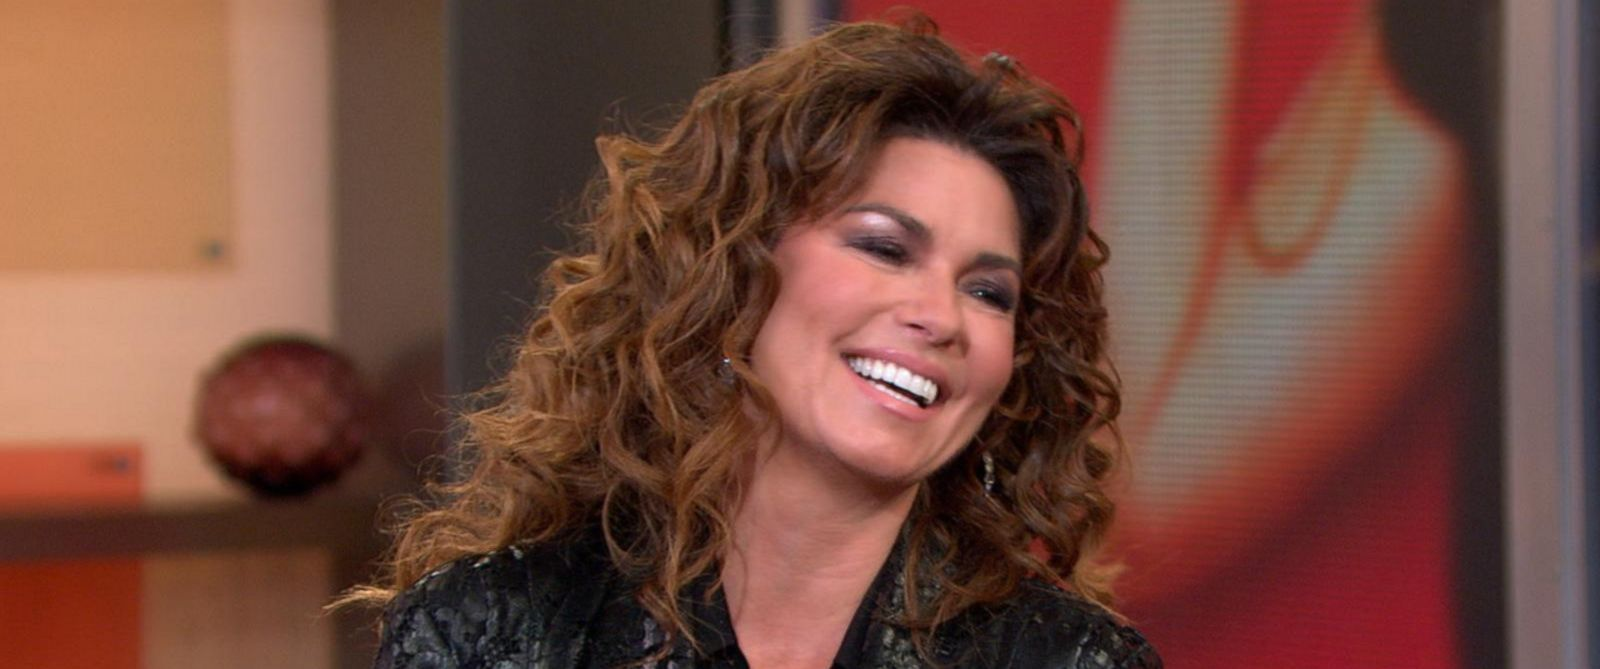 shania twain 2016shania twain - ka-ching, shania twain - ka-ching скачать, shania twain слушать, shania twain 2016, shania twain - from this moment on, shania twain you're still the one, shania twain клипы, shania twain песни, shania twain - ka-ching текст, shania twain - from this moment on перевод, shania twain фото, shania twain wiki, shania twain forever and for always, shania twain википедия, shania twain 2017, shania twain up, shania twain come on over, shania twain from this moment lyrics, shania twain instagram, shania twain lyrics